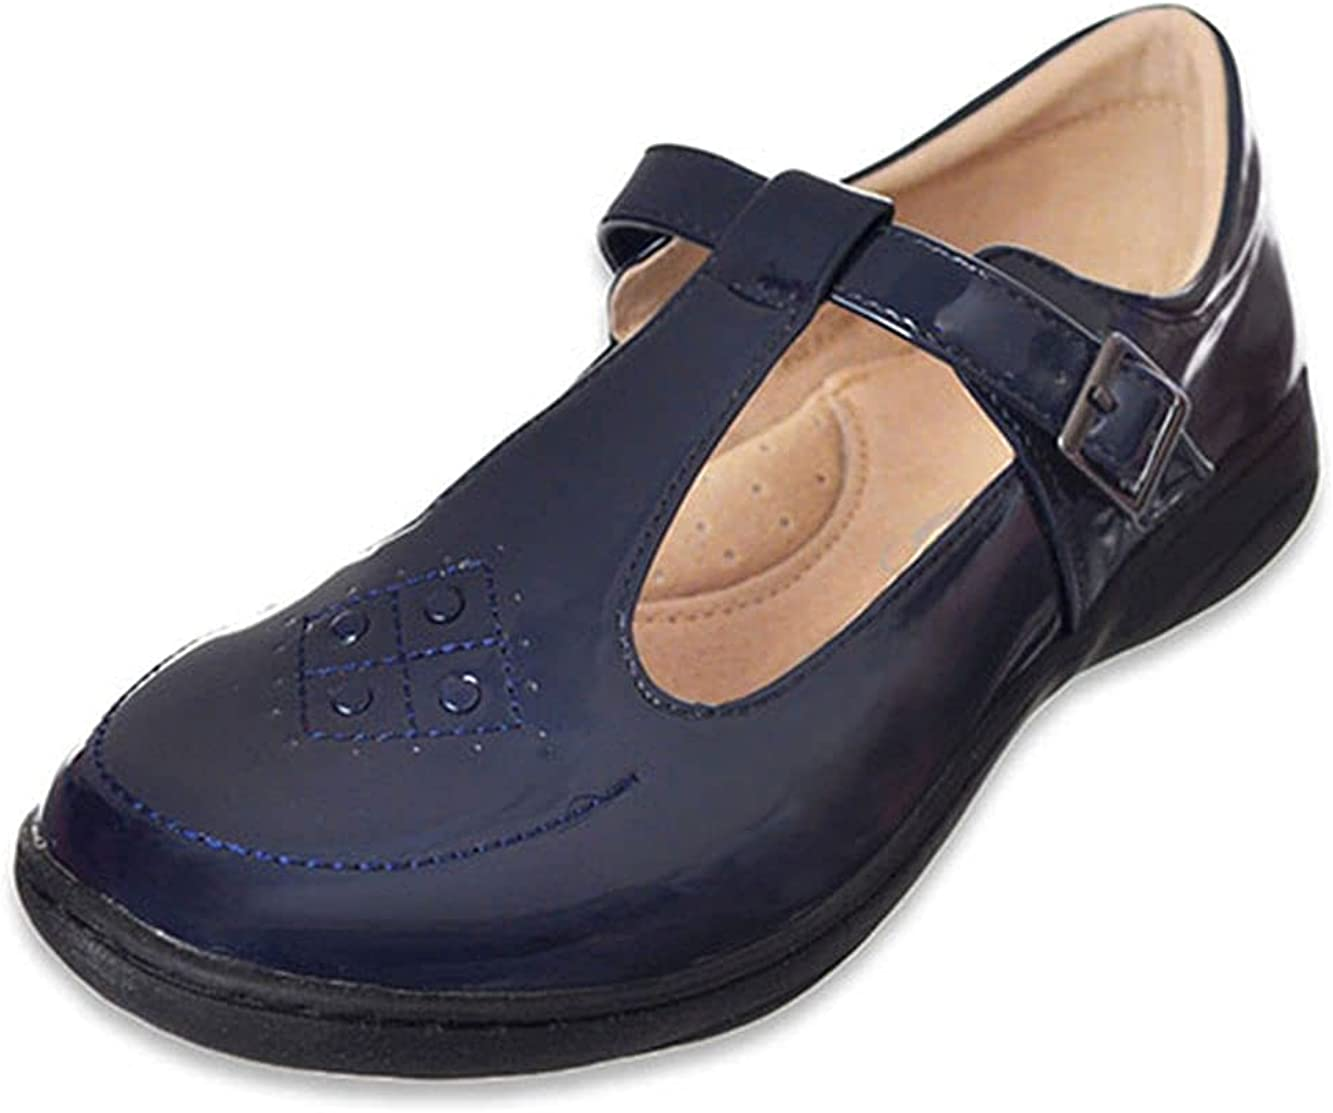 Easy Strider Little Girls Circle Grid Mary Janes - Navy, 5